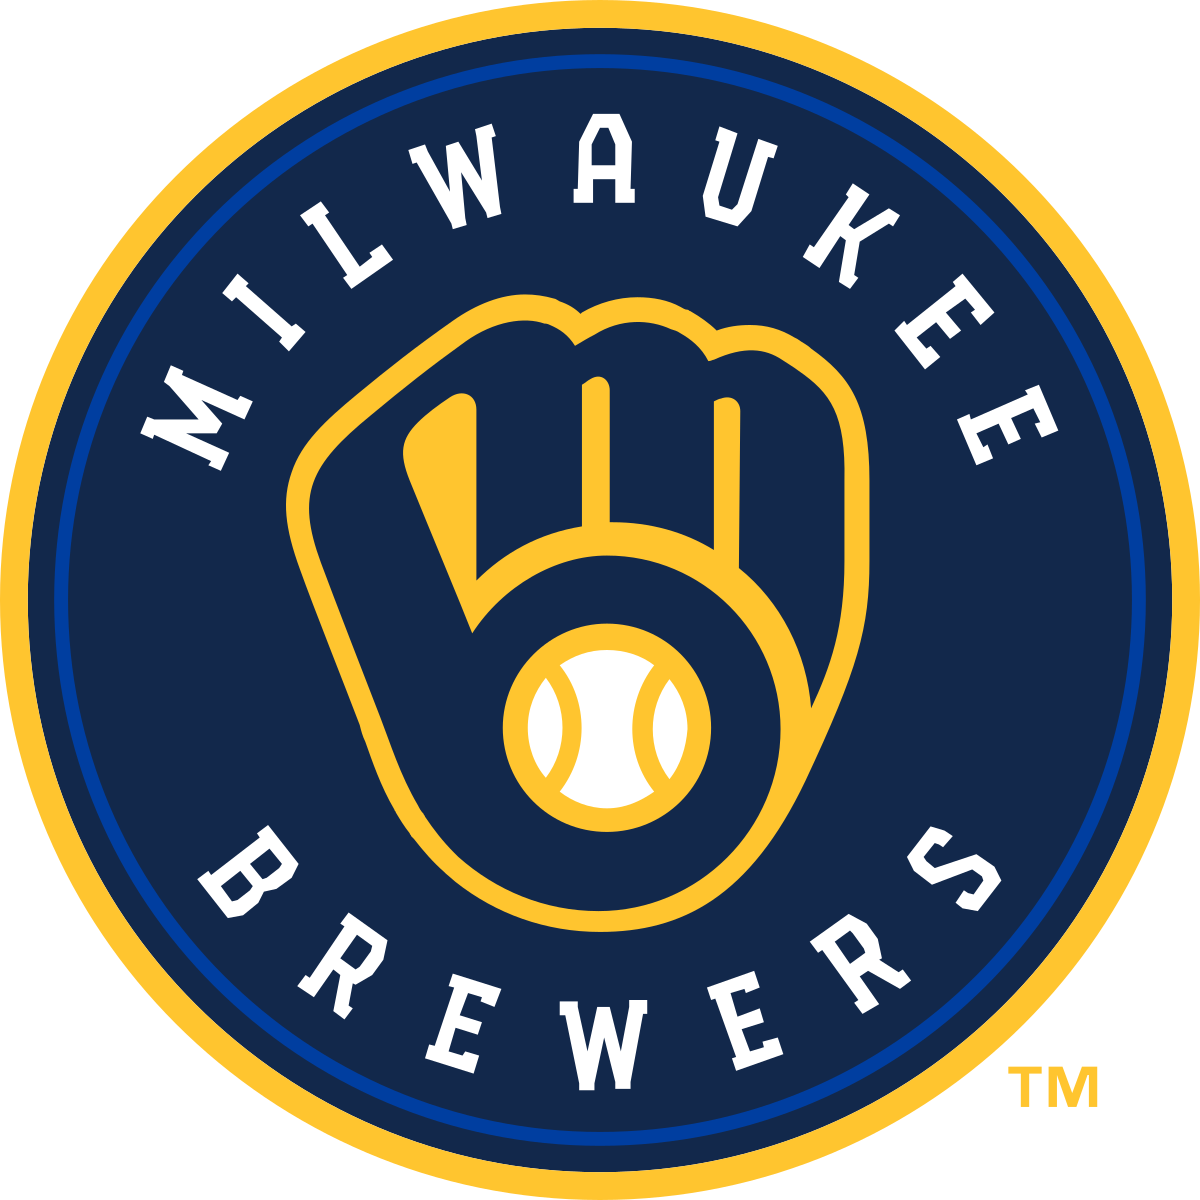 Brewers Lose But Clinch Playoff Spot